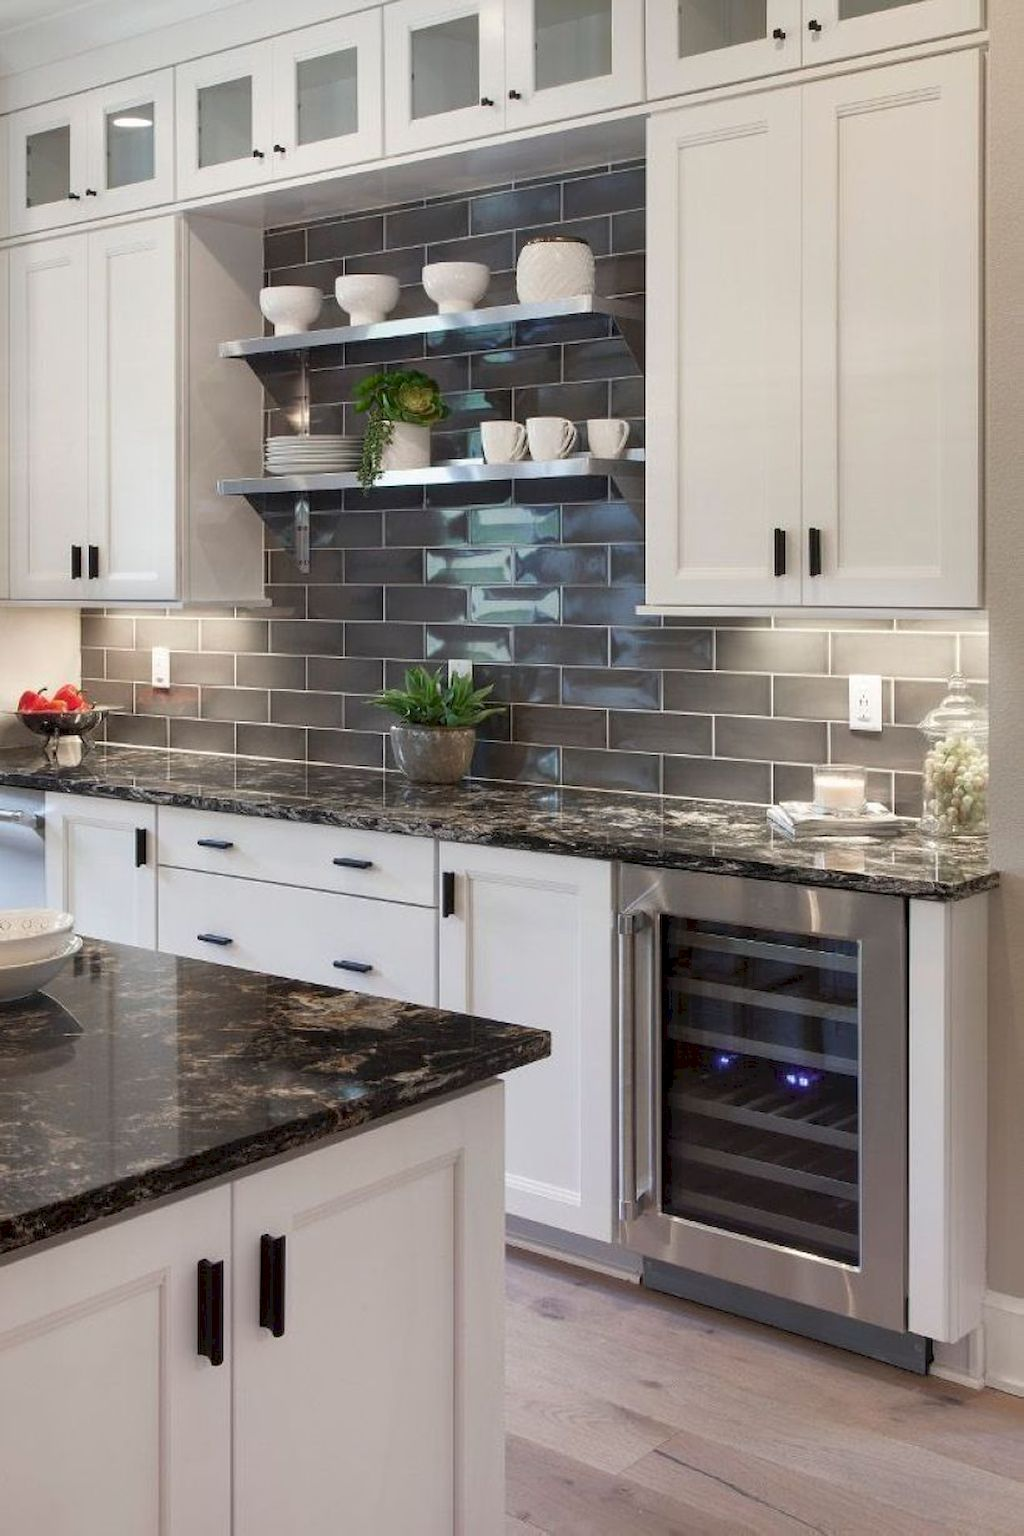 31 Popular Kitchen Backsplash Design Ideas Will Be Trend